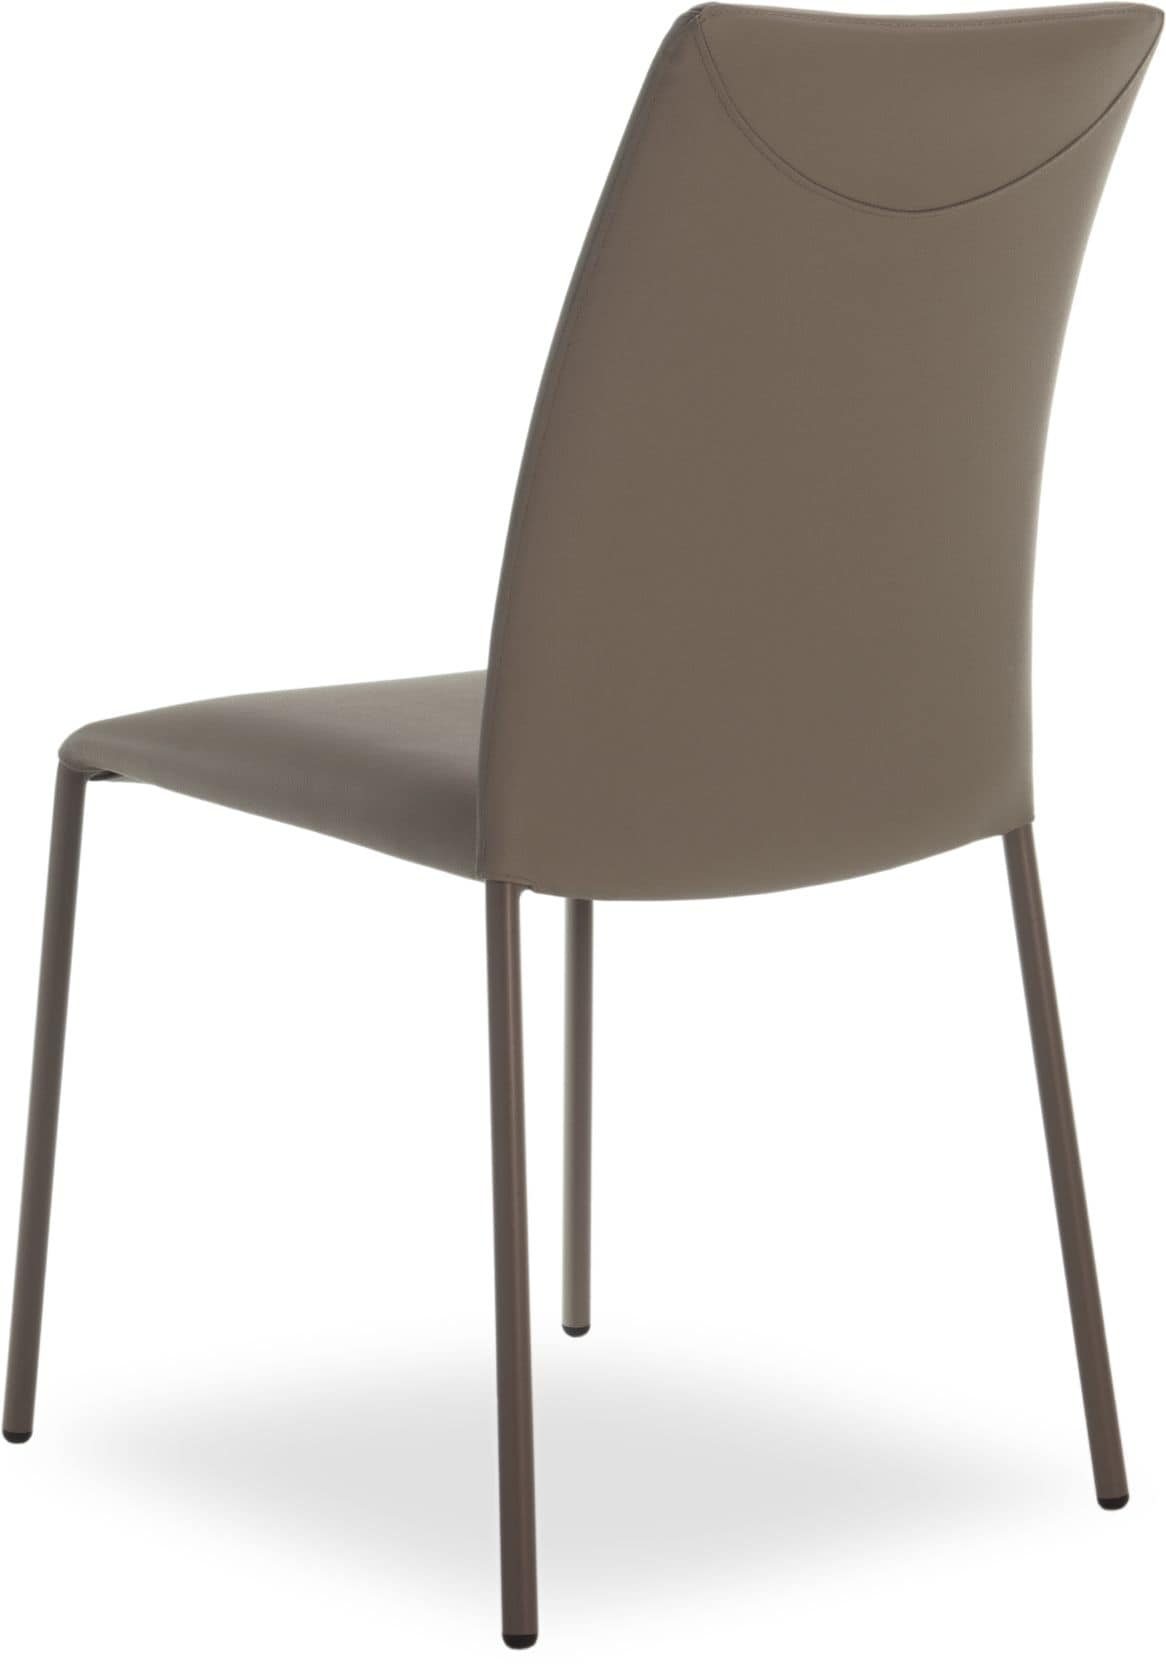 Belle, Stackable metal chair, genuine leather covering